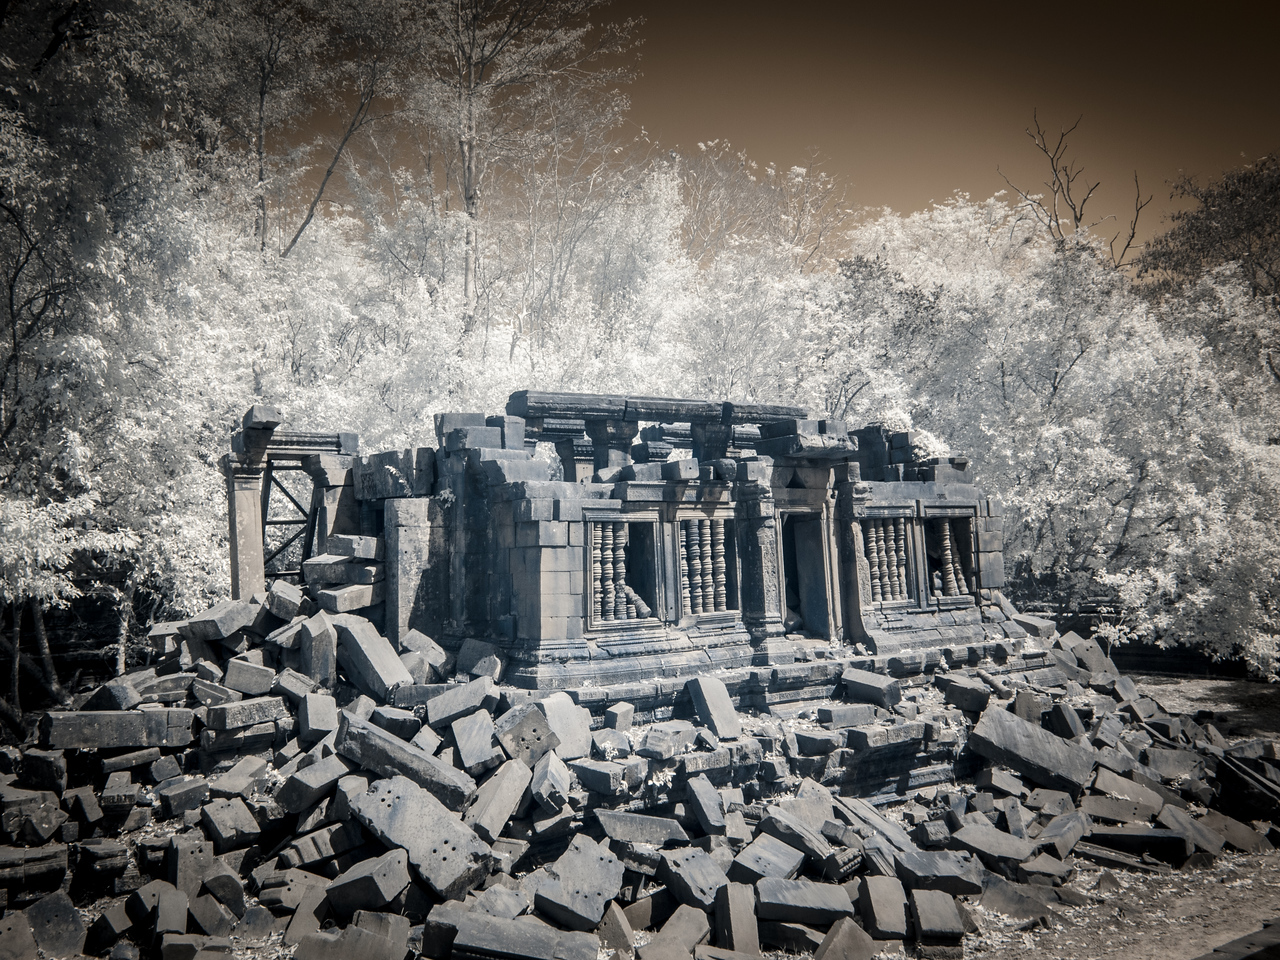 The ruins of the library.